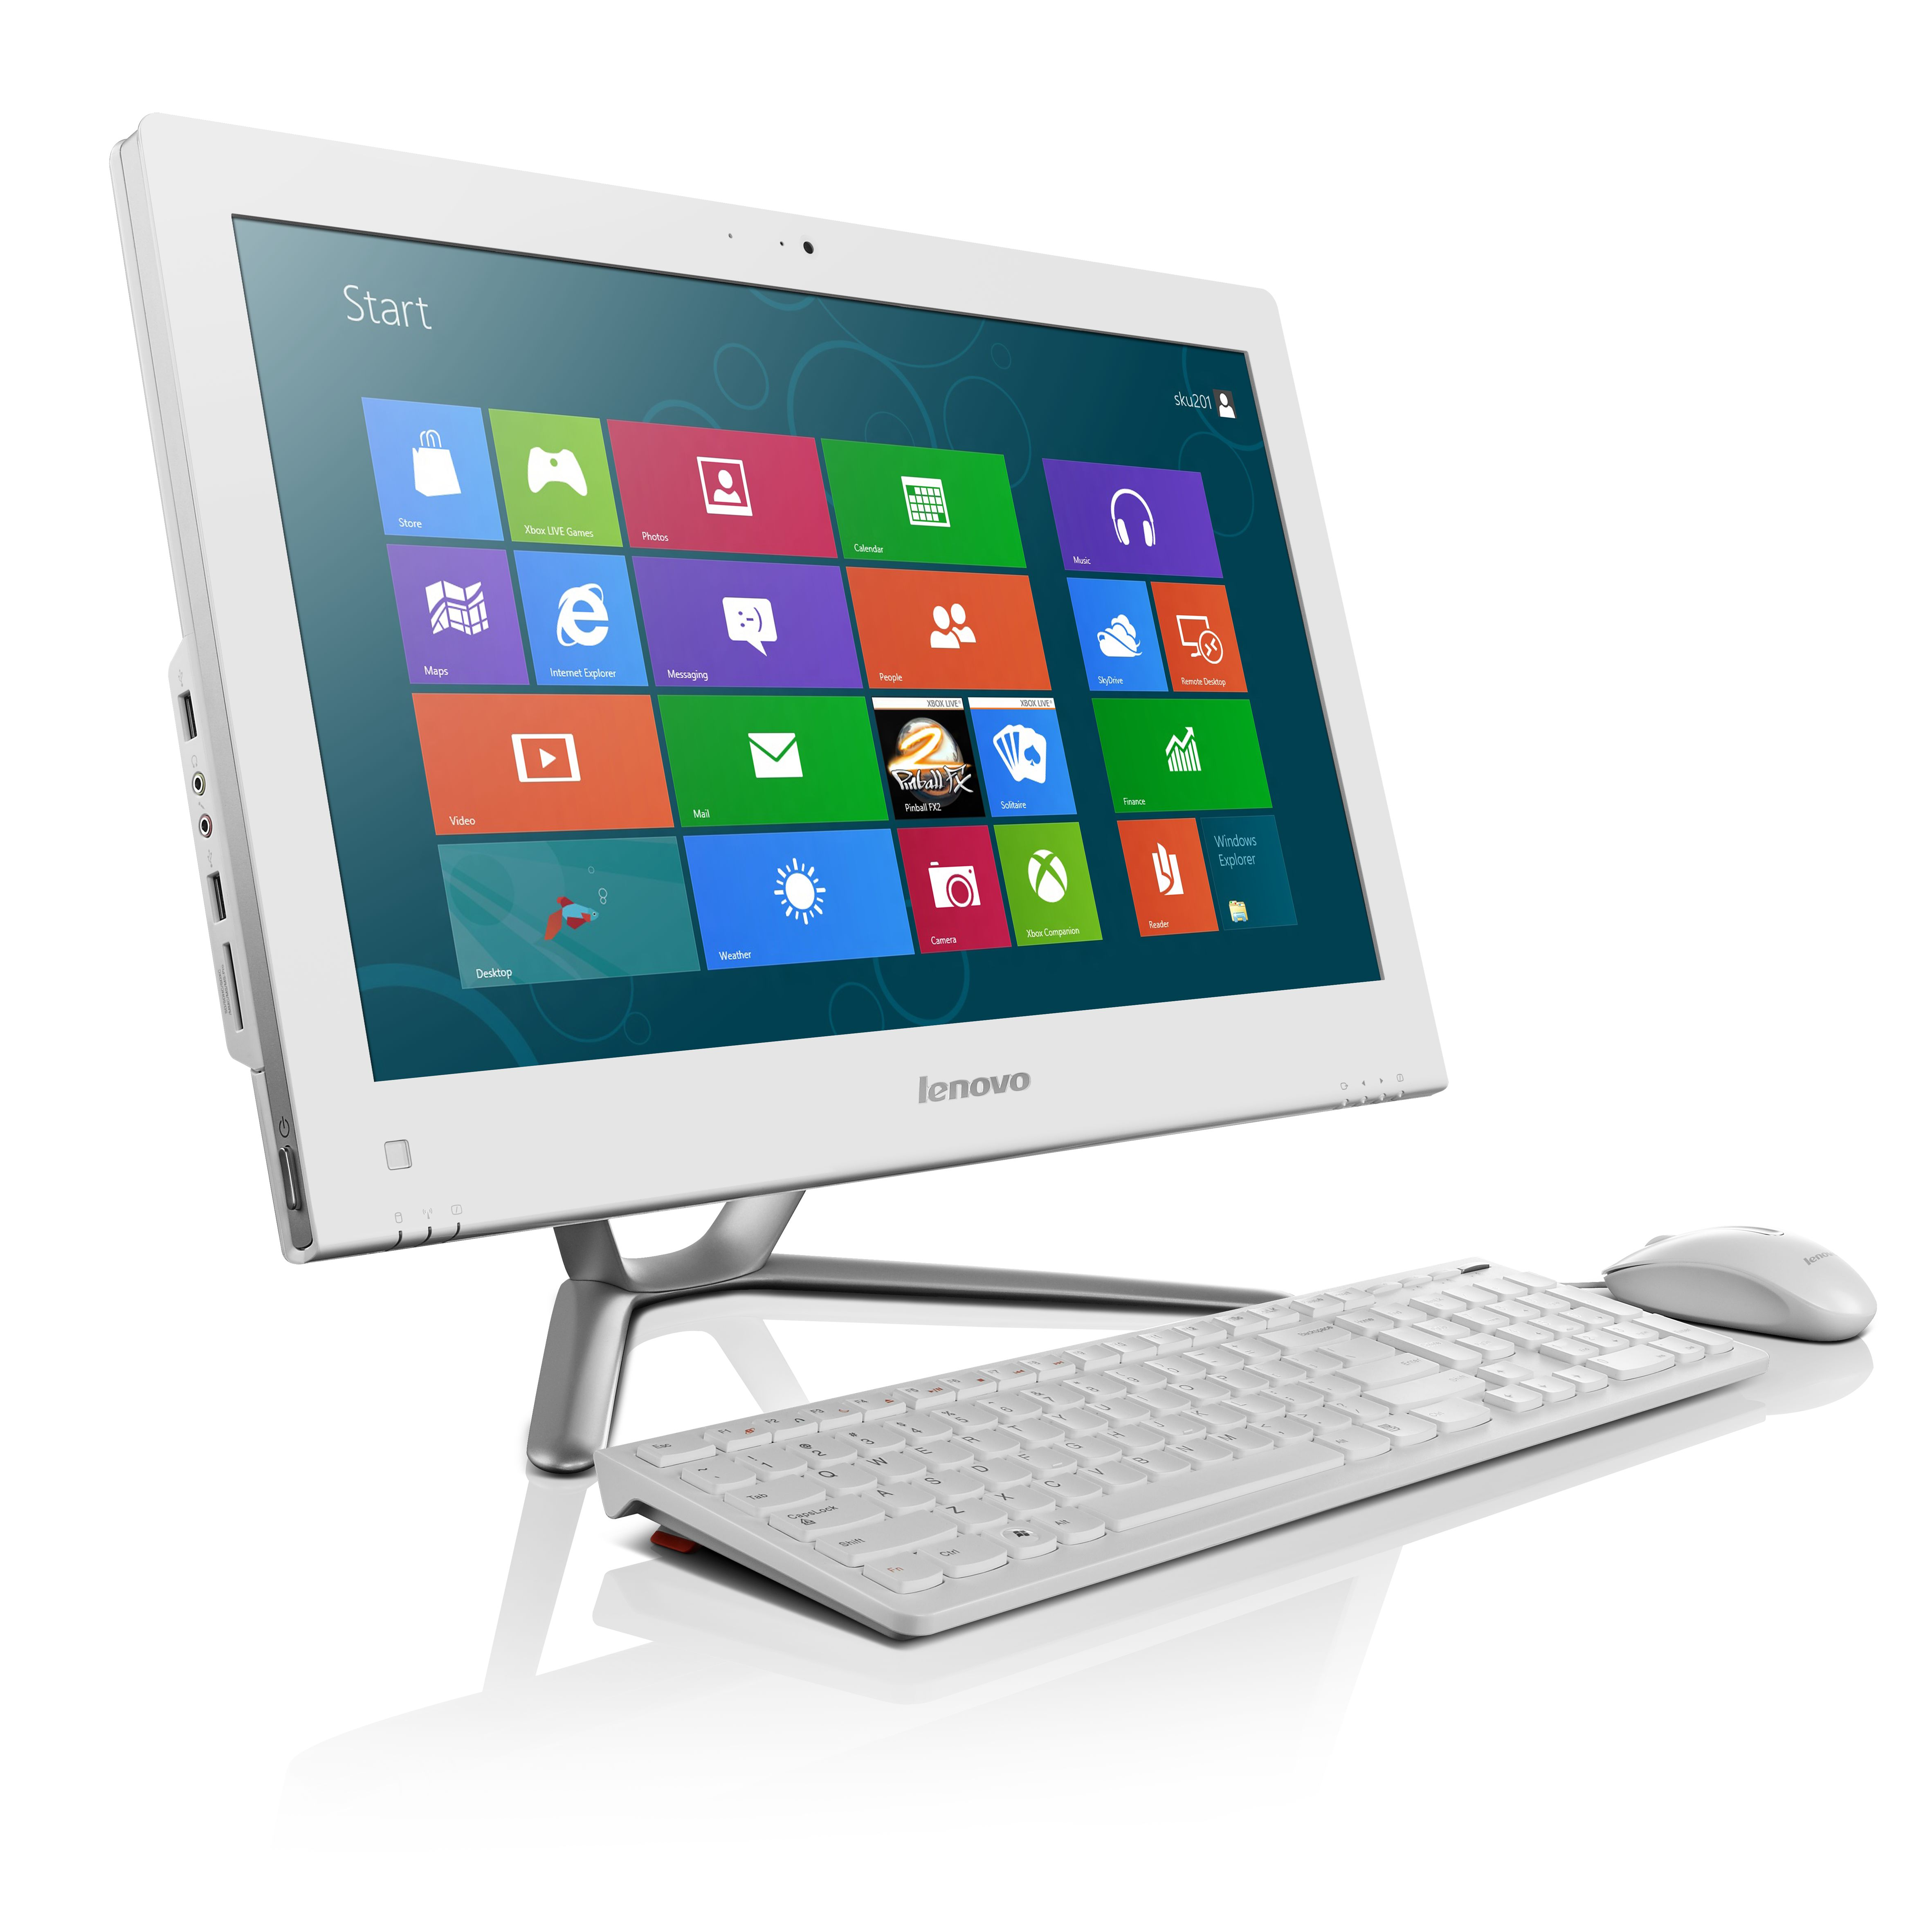 lenovo c345 20 inch all in one desktop pc white amd. Black Bedroom Furniture Sets. Home Design Ideas